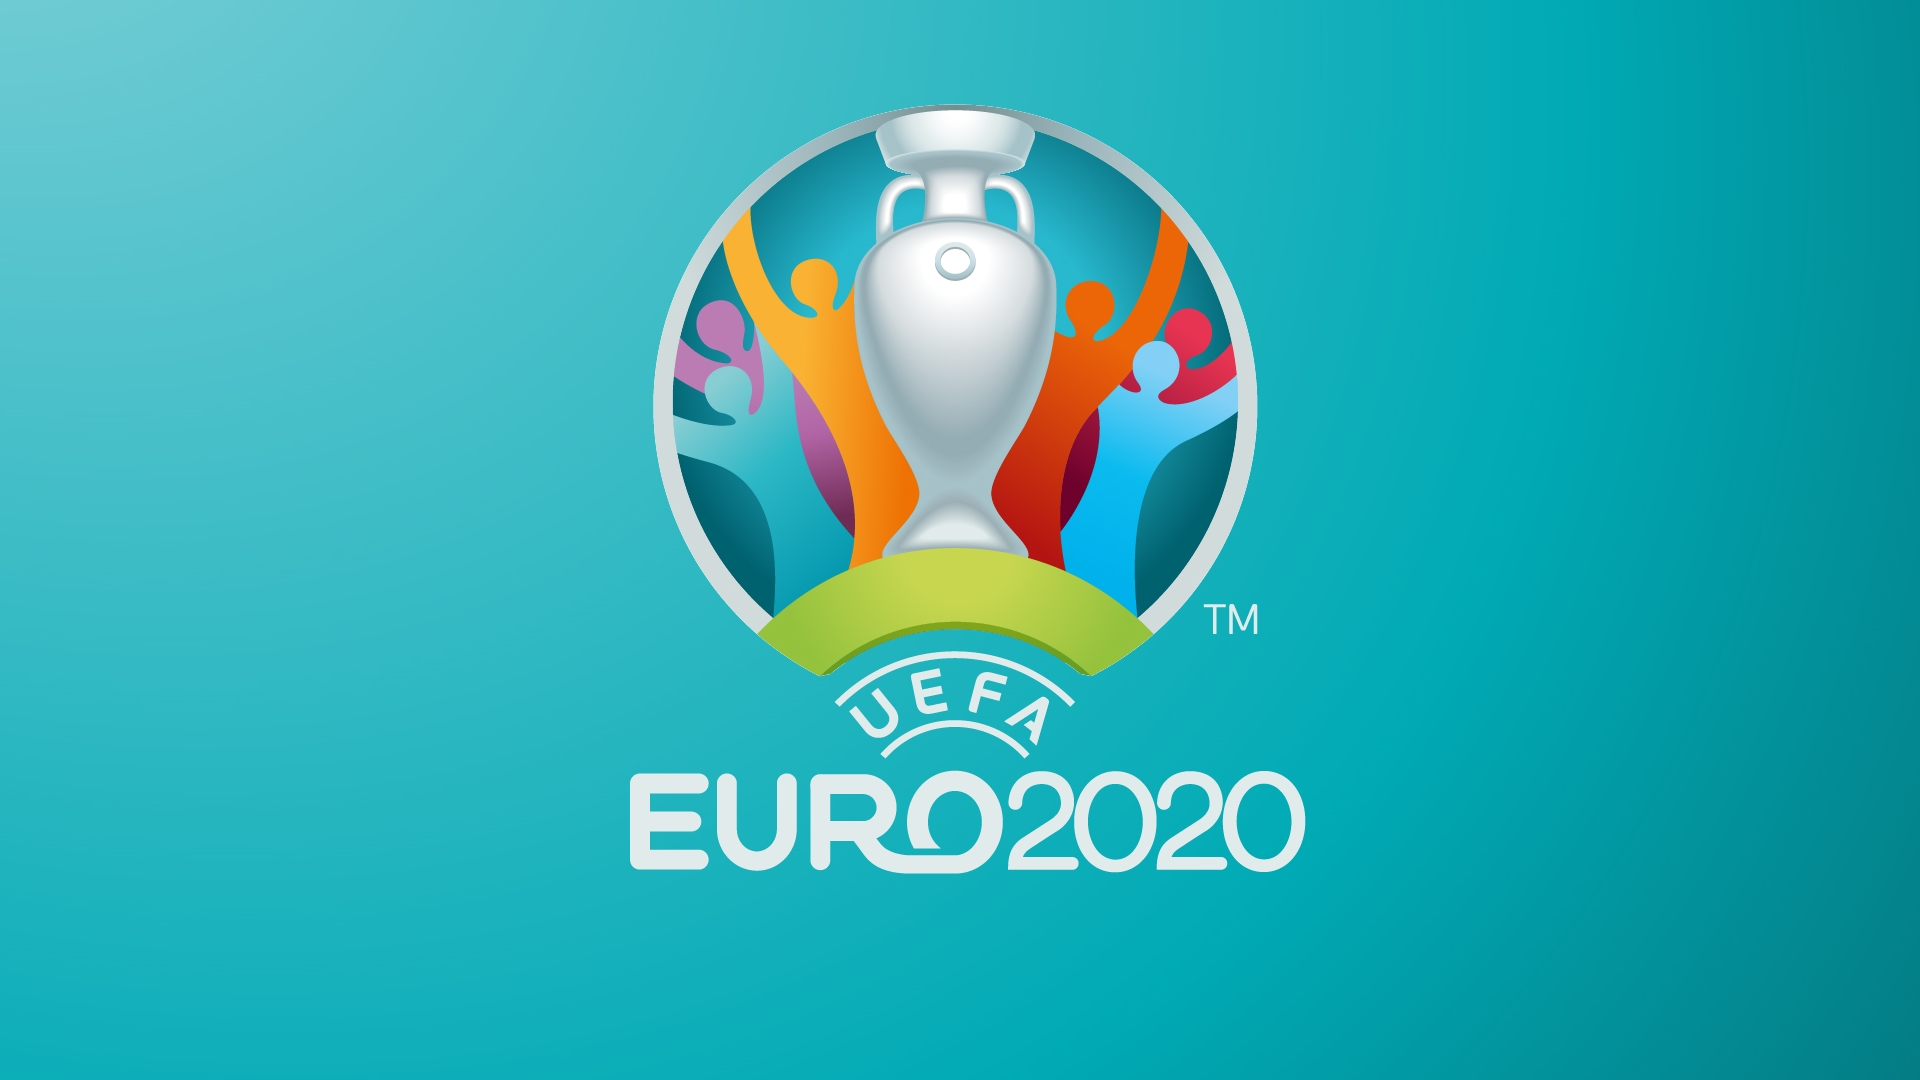 Uefa unveils Euro 2020 logo - SuperSport - Football